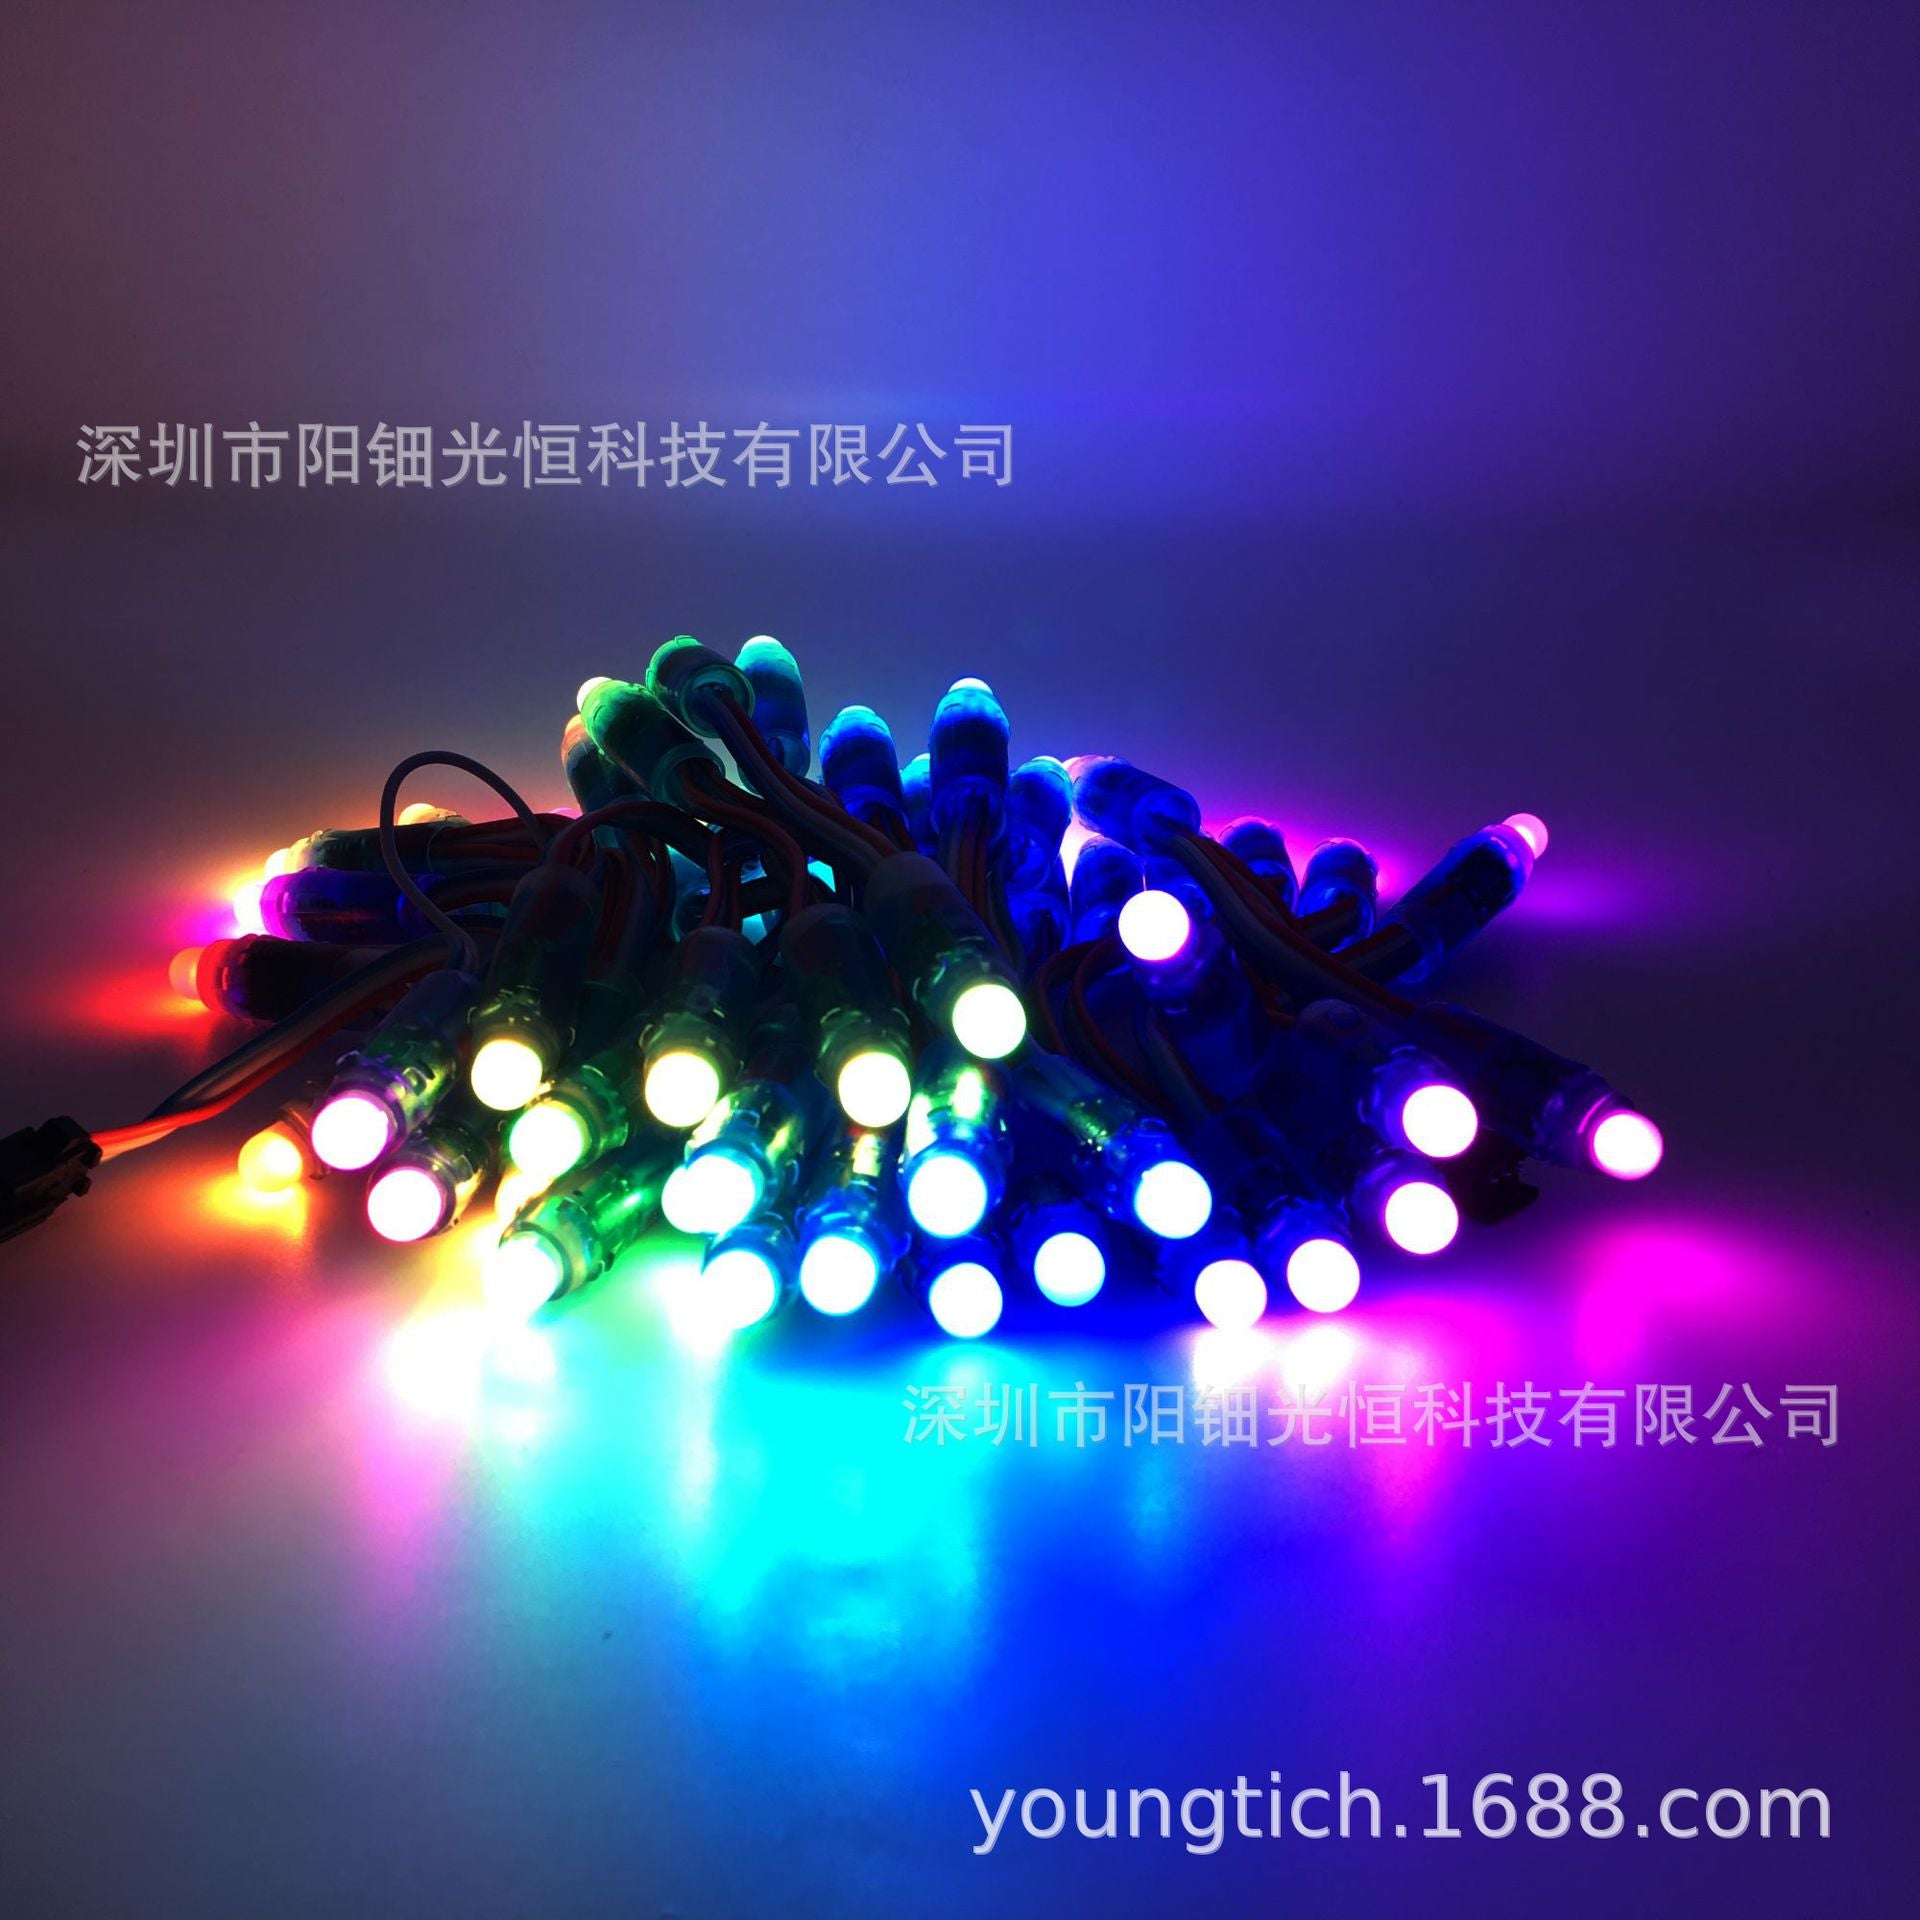 LED full color string 2811 perforated lamp 1903 waterproof exposed lamp programmable F12mm light string glue pixel